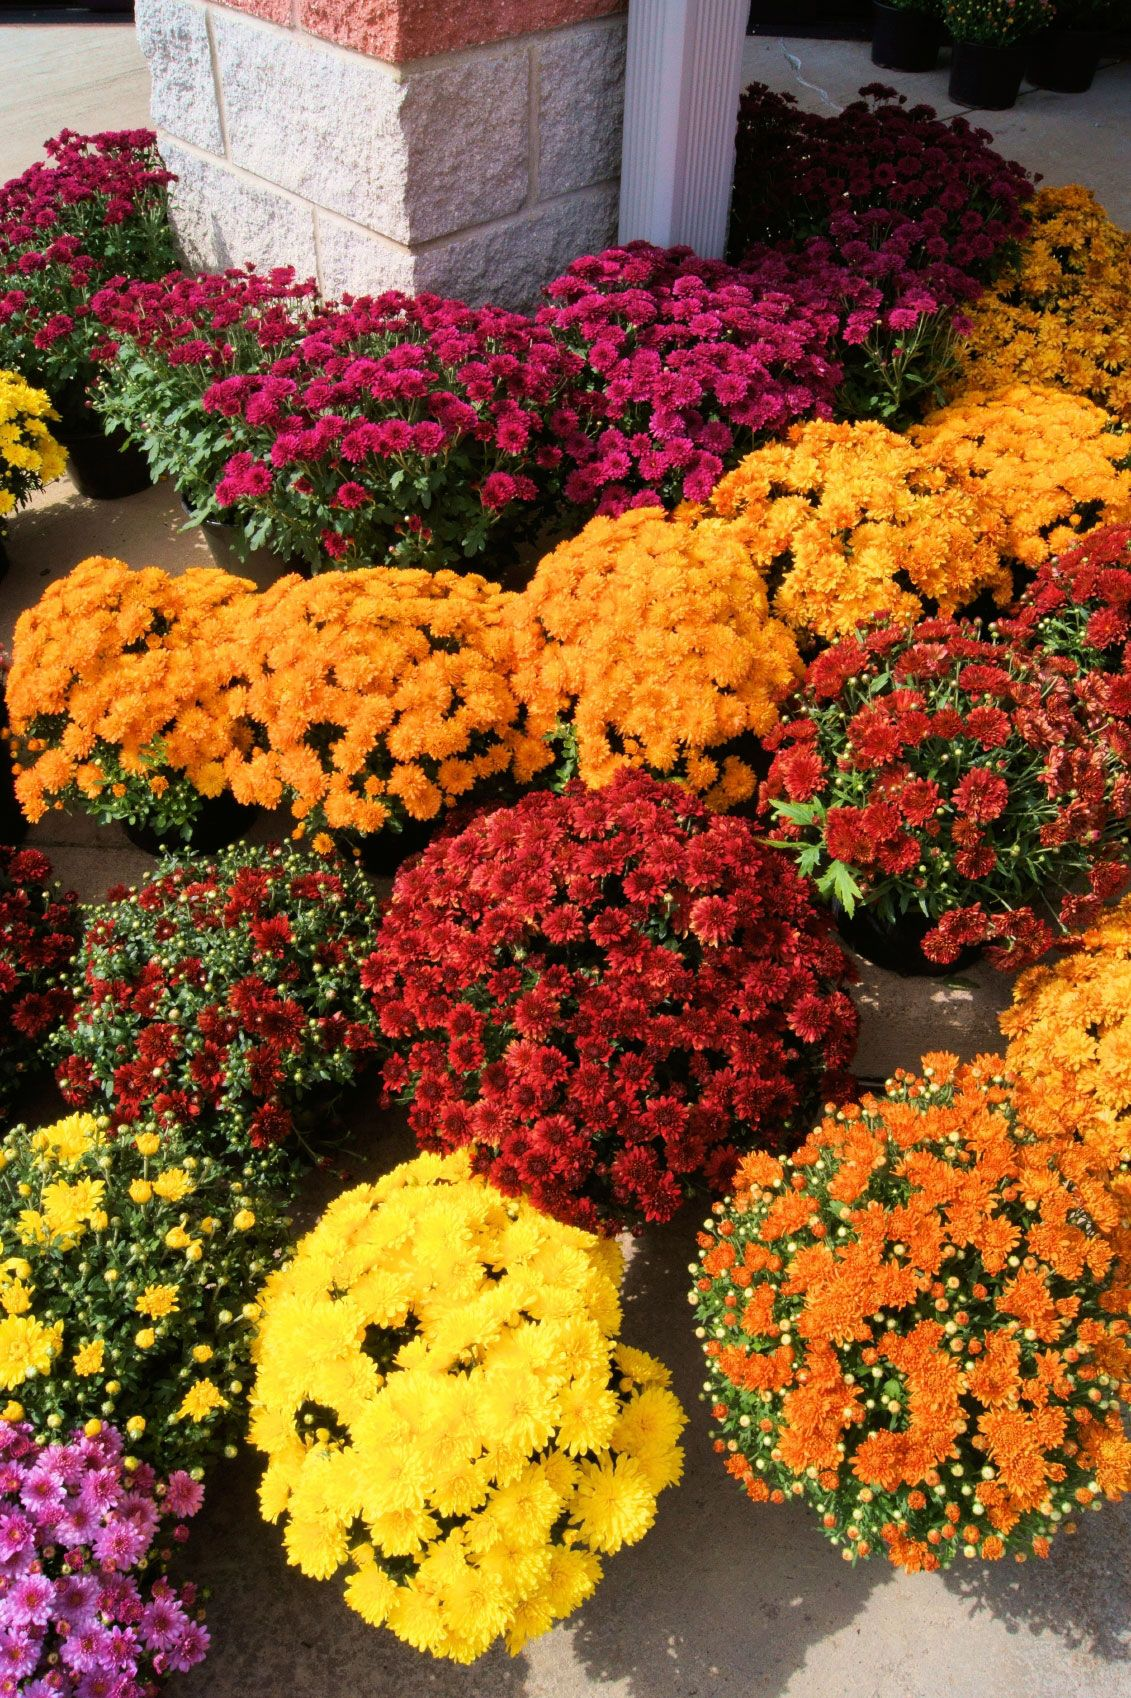 Fertilizing Mums Tips For Feed Mum Plants Fall mums